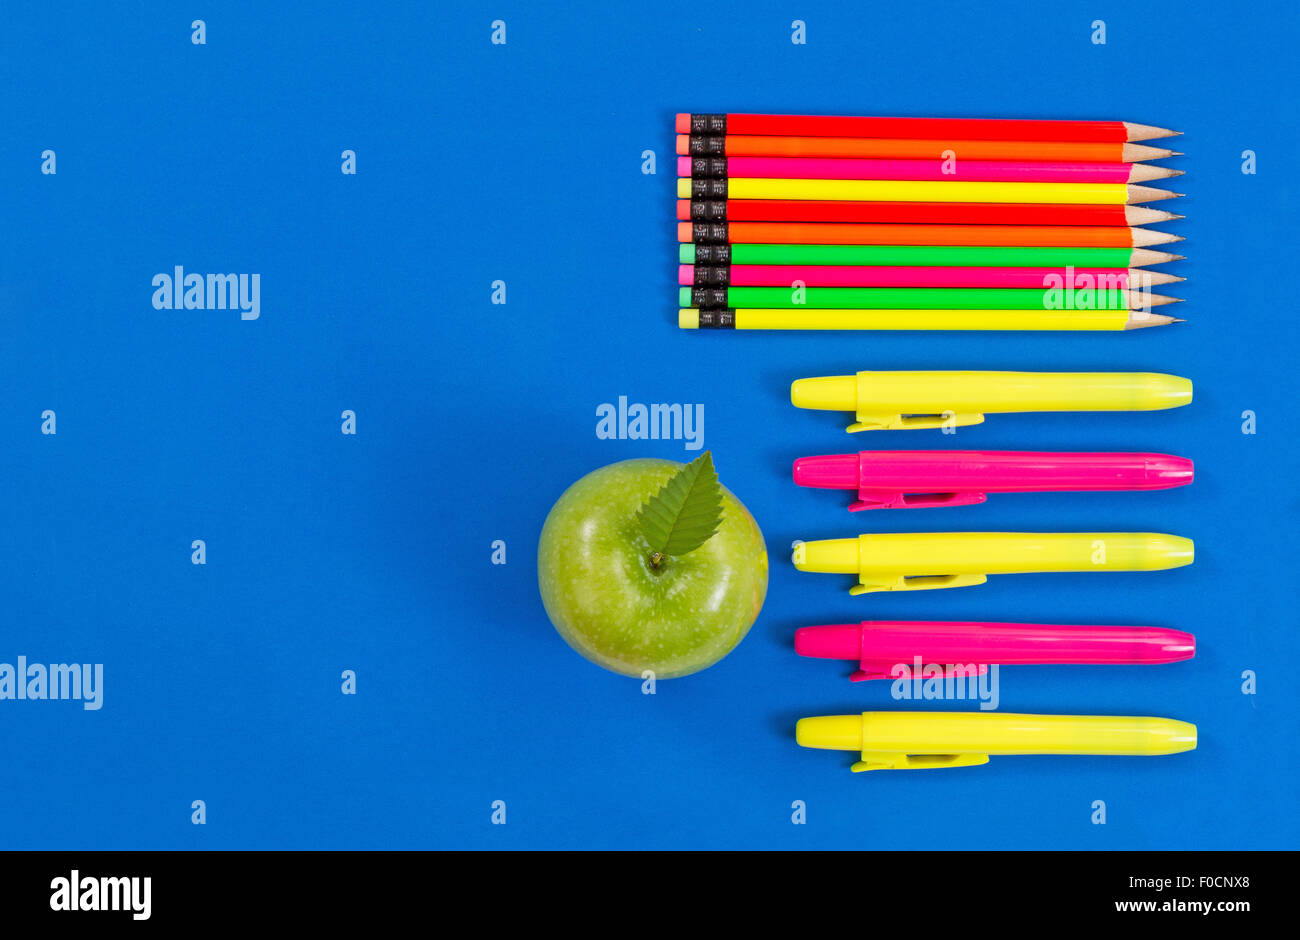 Office or back to school supplies consisting of a green apple, highlight markers and colorful pencils on blue background. - Stock Image